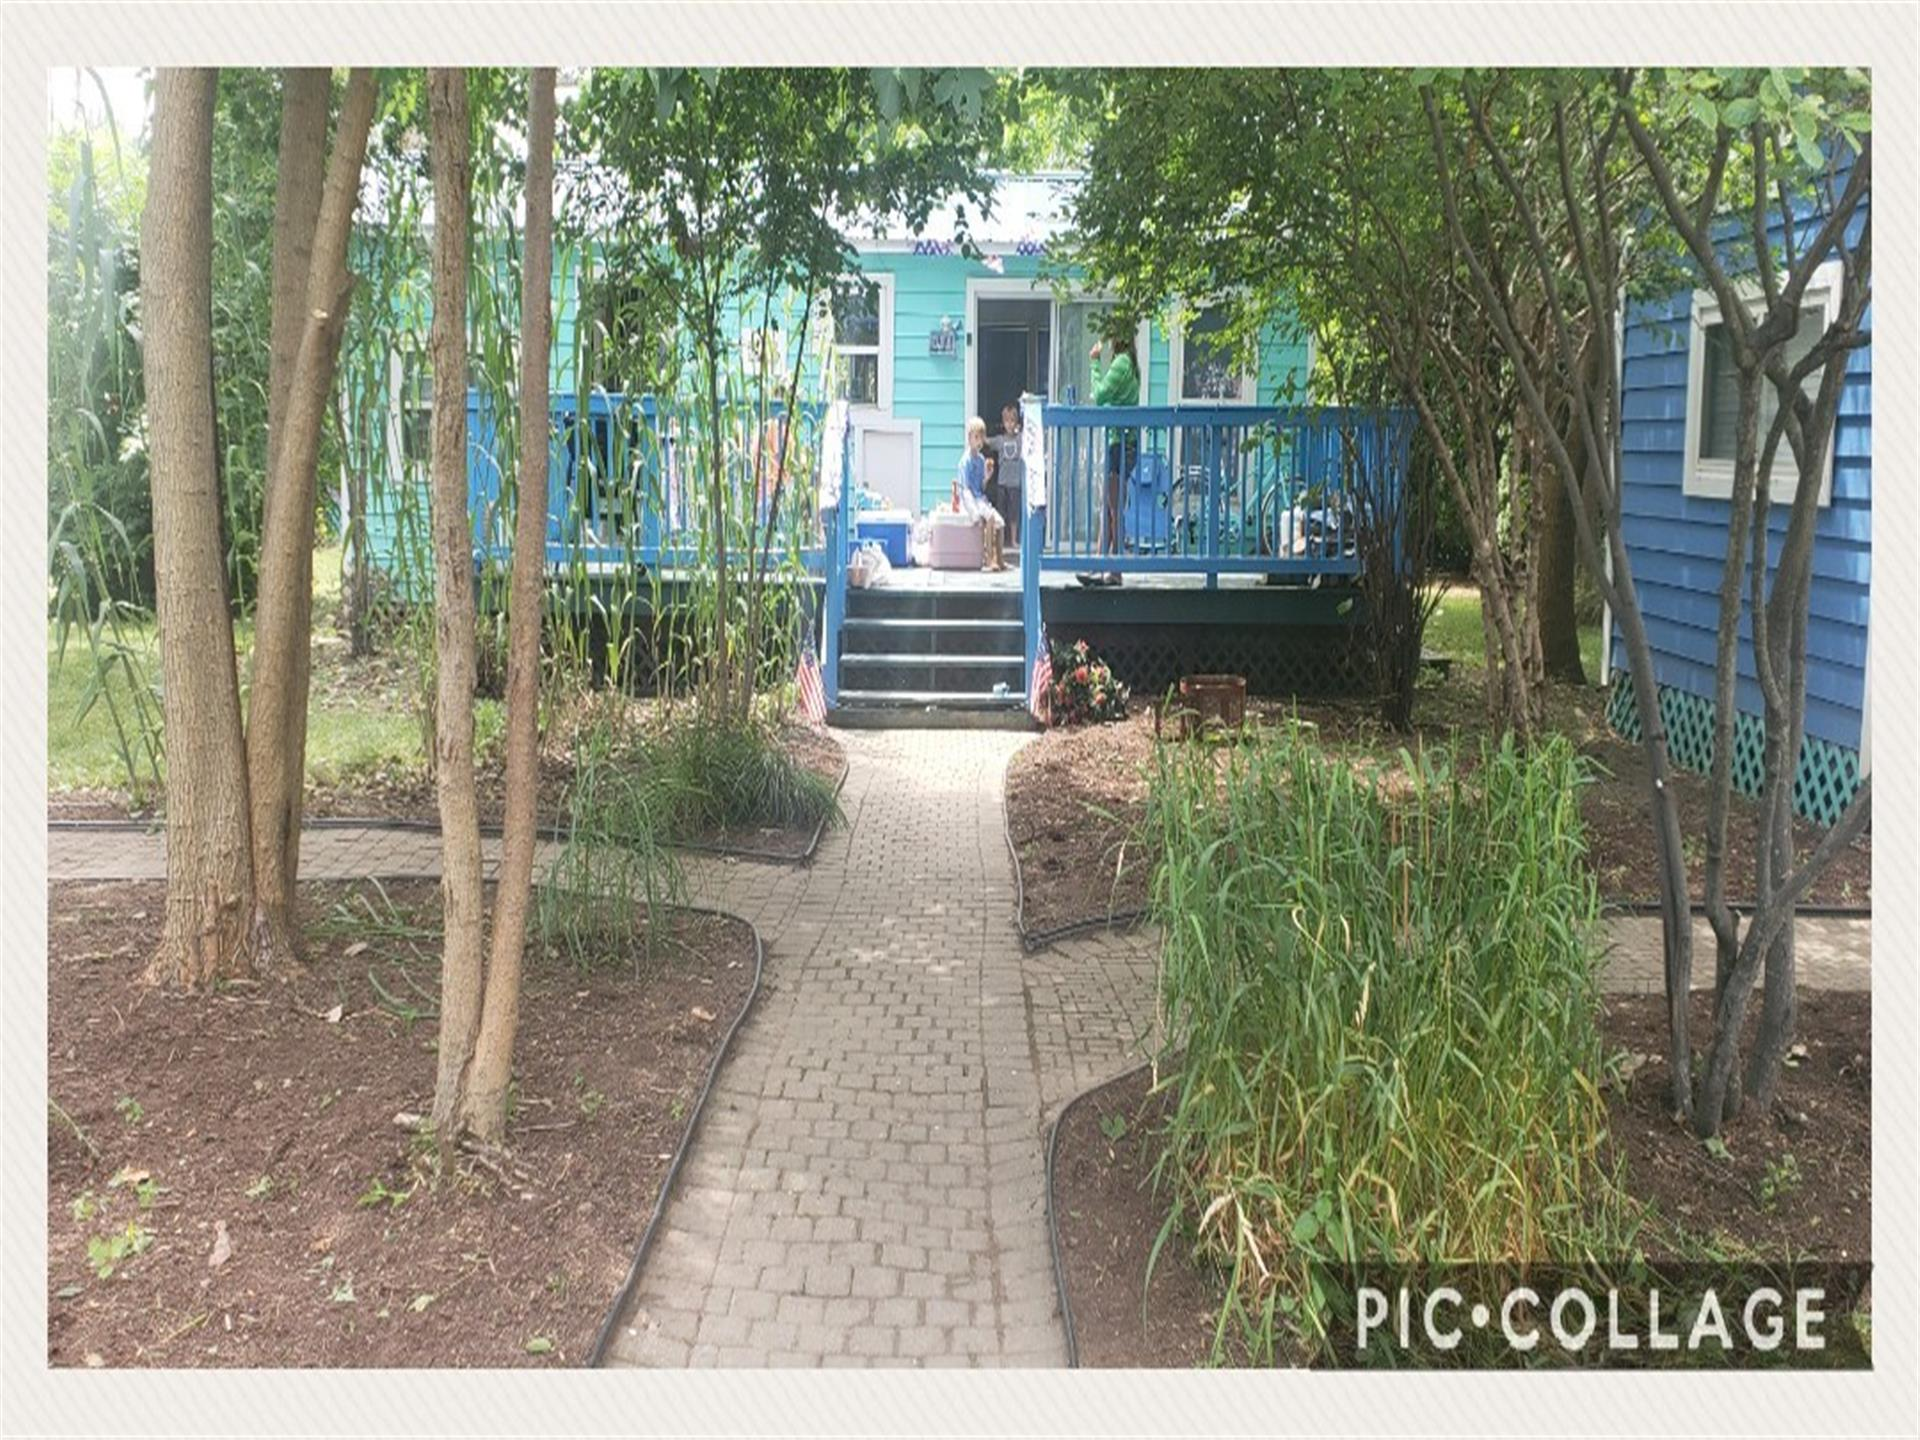 outdoor view of the path leading up to the teal house with bright blue staircase